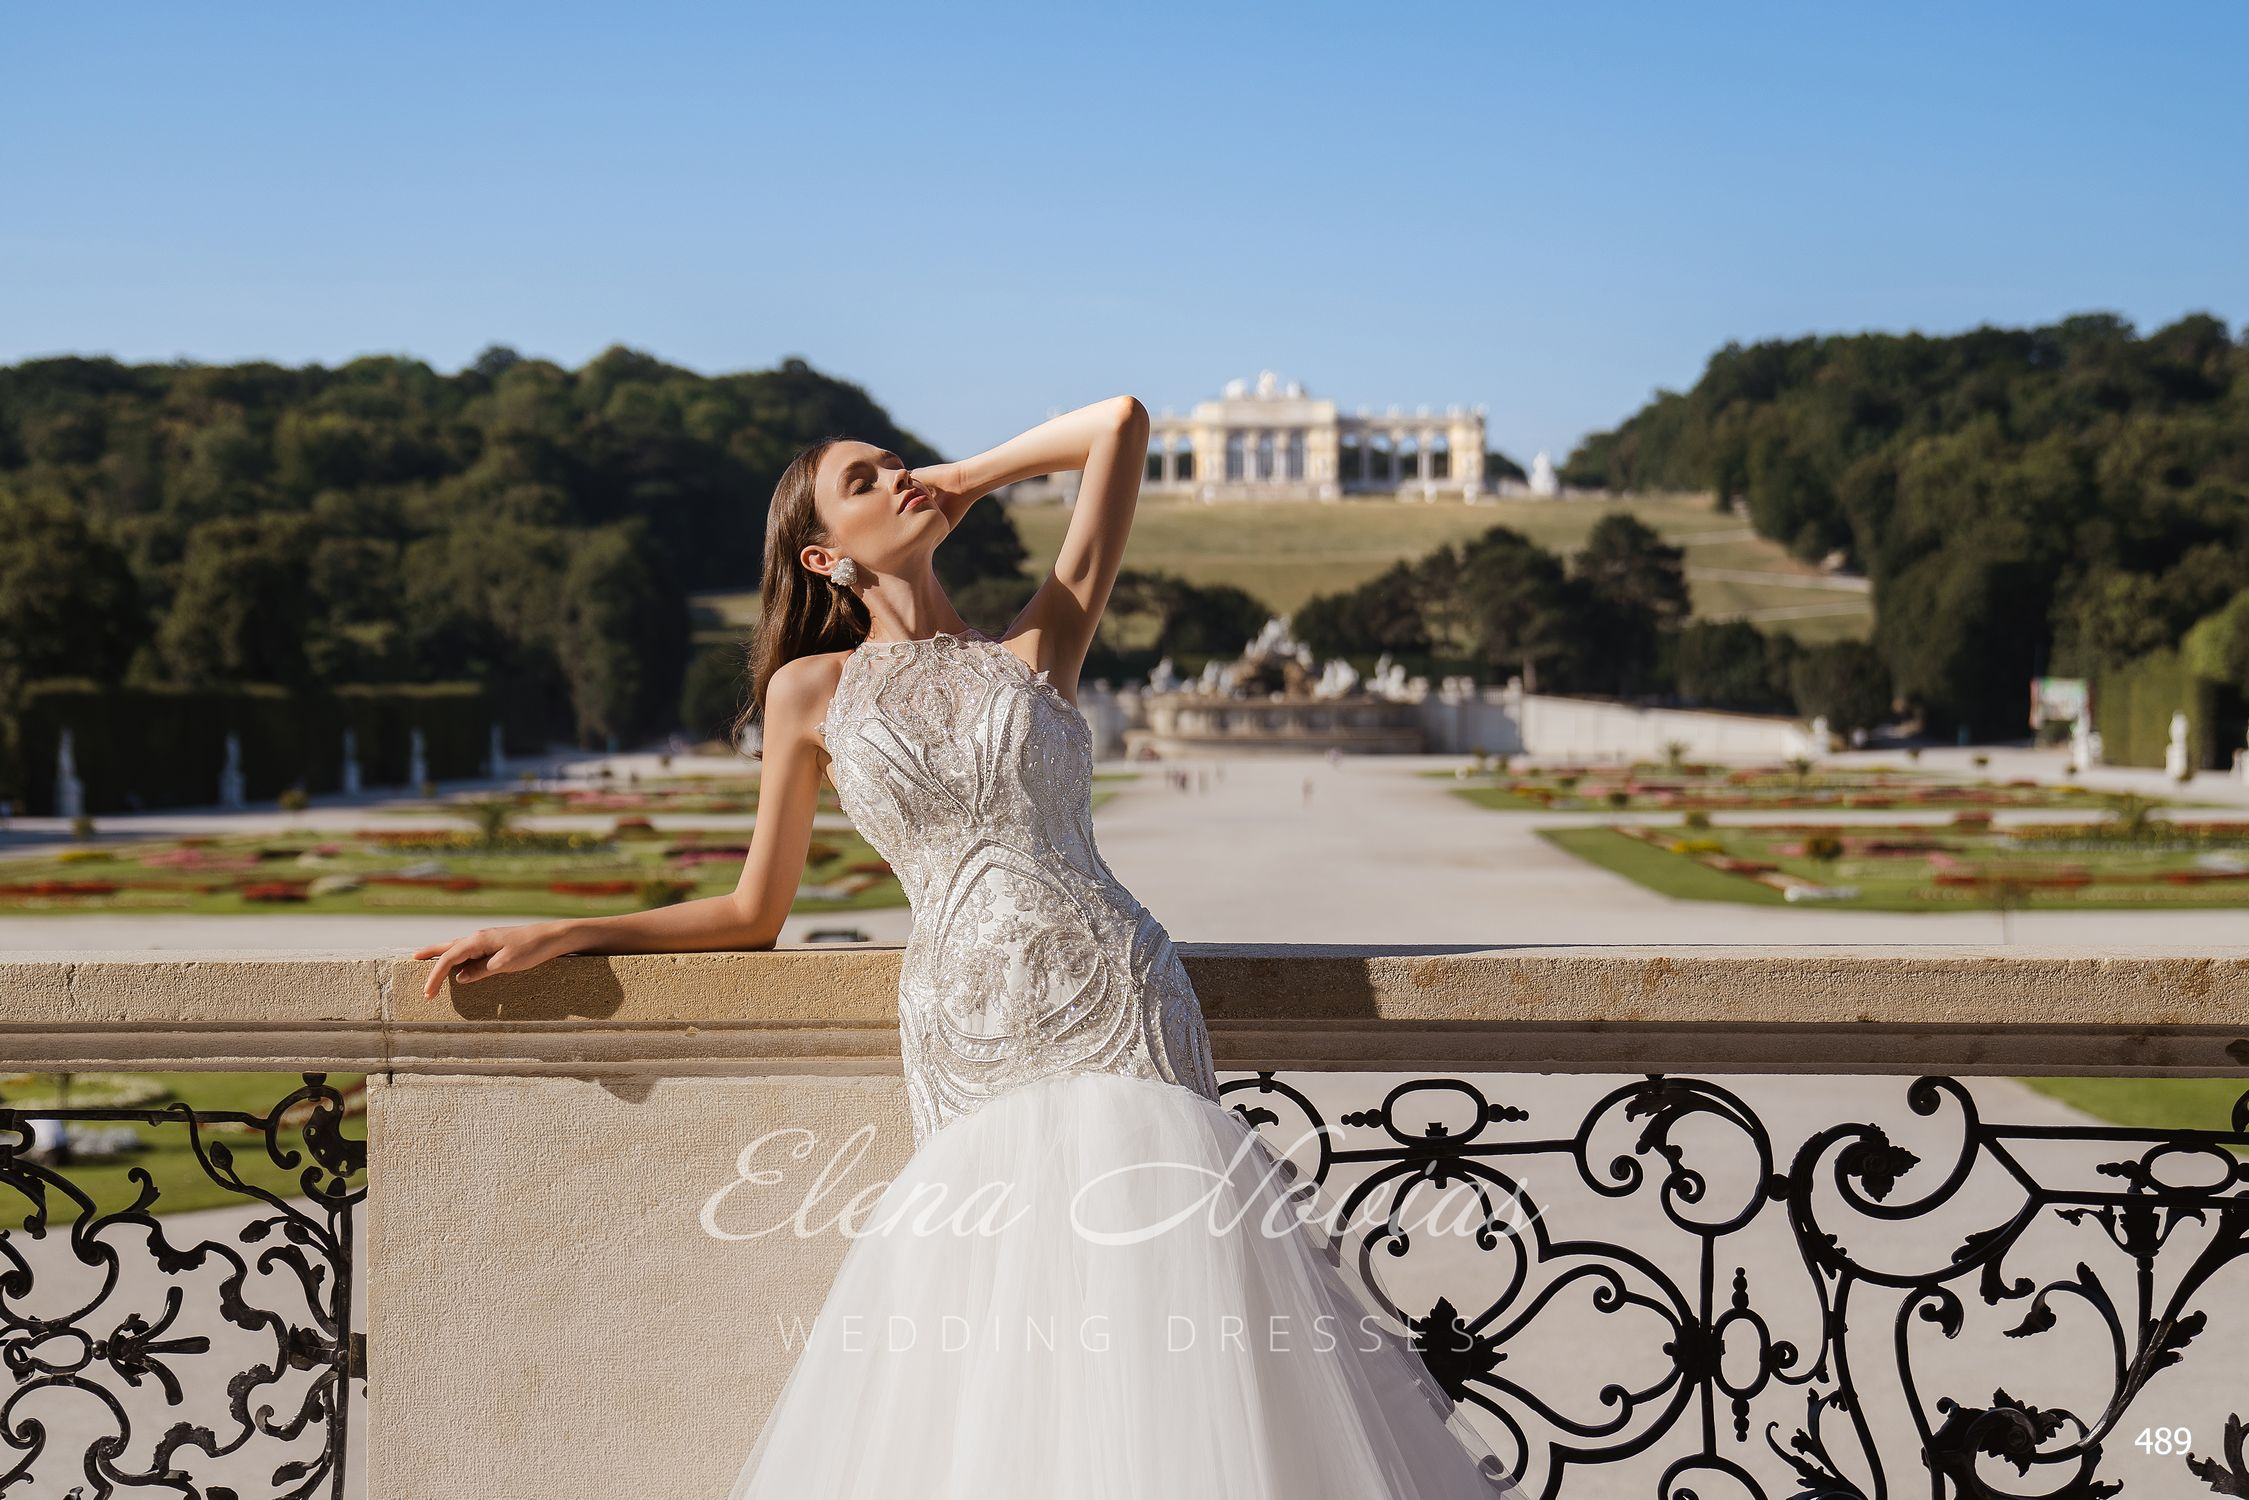 Wedding dresses 489 3